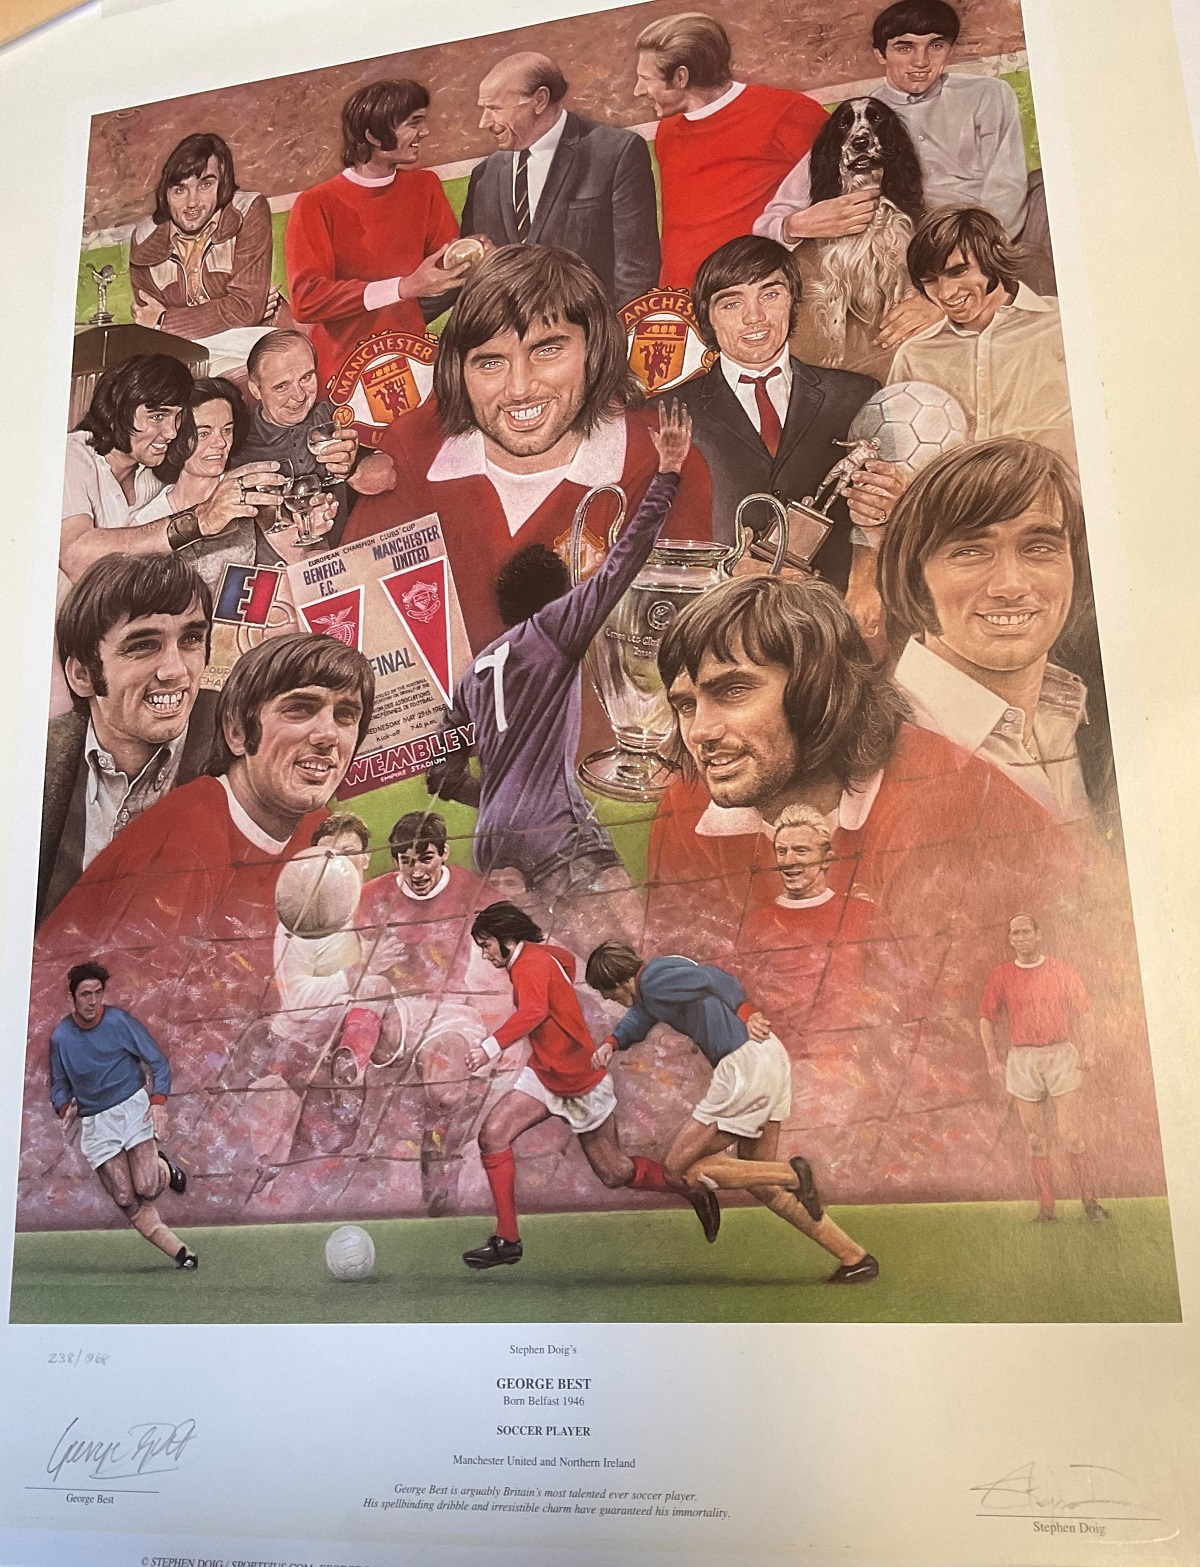 George Best 24x20 print signed by the United legend and the artist Stephen Doig limited edition - Image 2 of 2